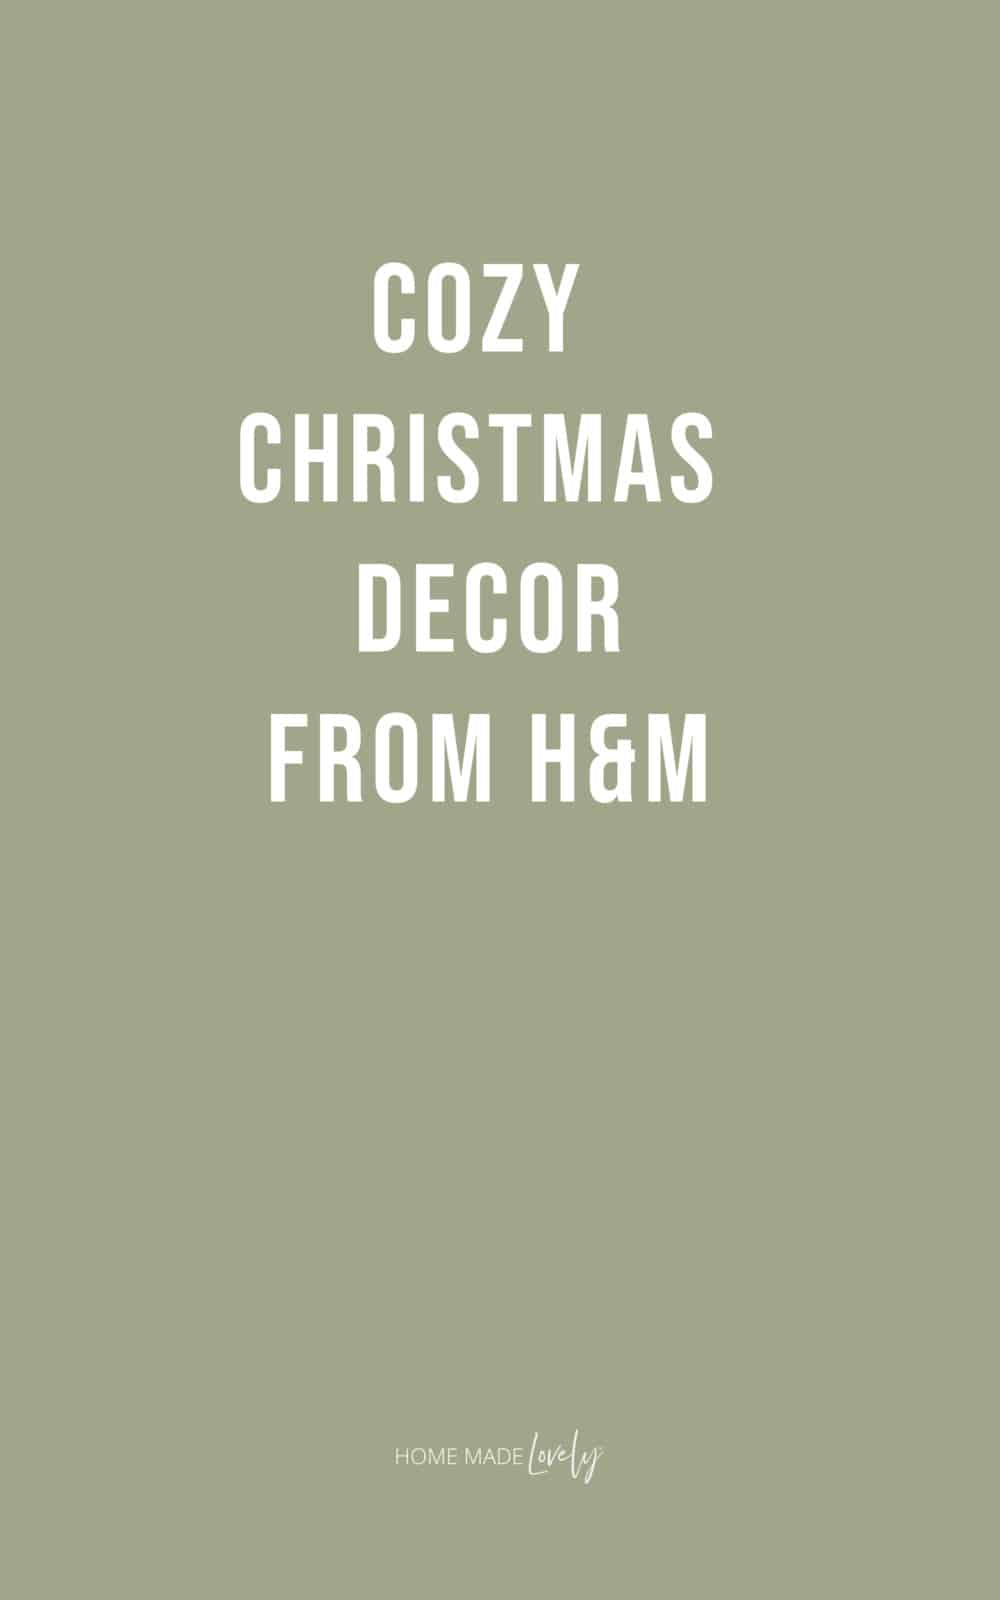 Cozy Christmas Decor From H&M